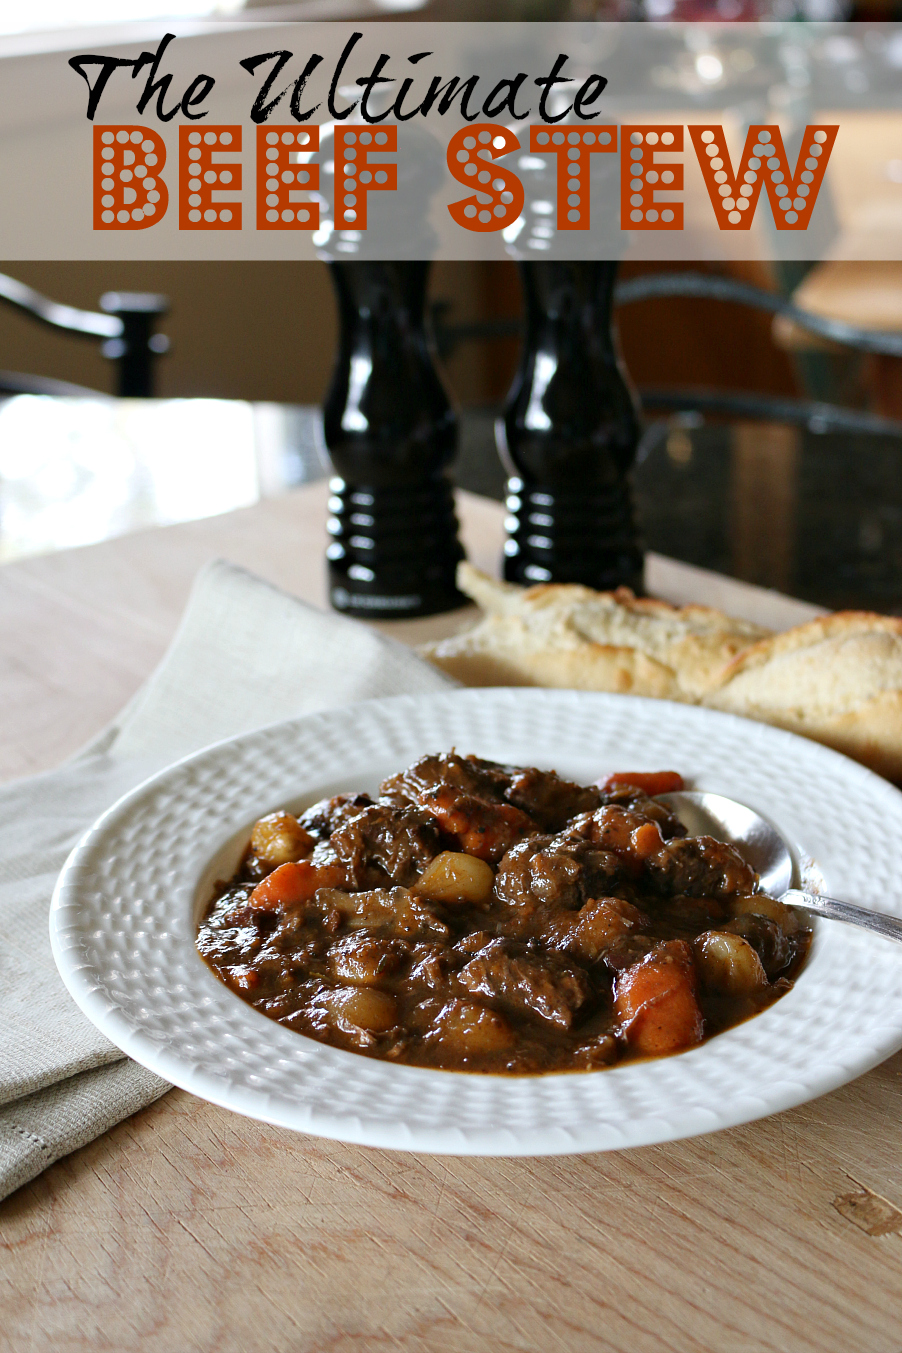 The Ultimate Beef Stew - Cast Iron Recipe